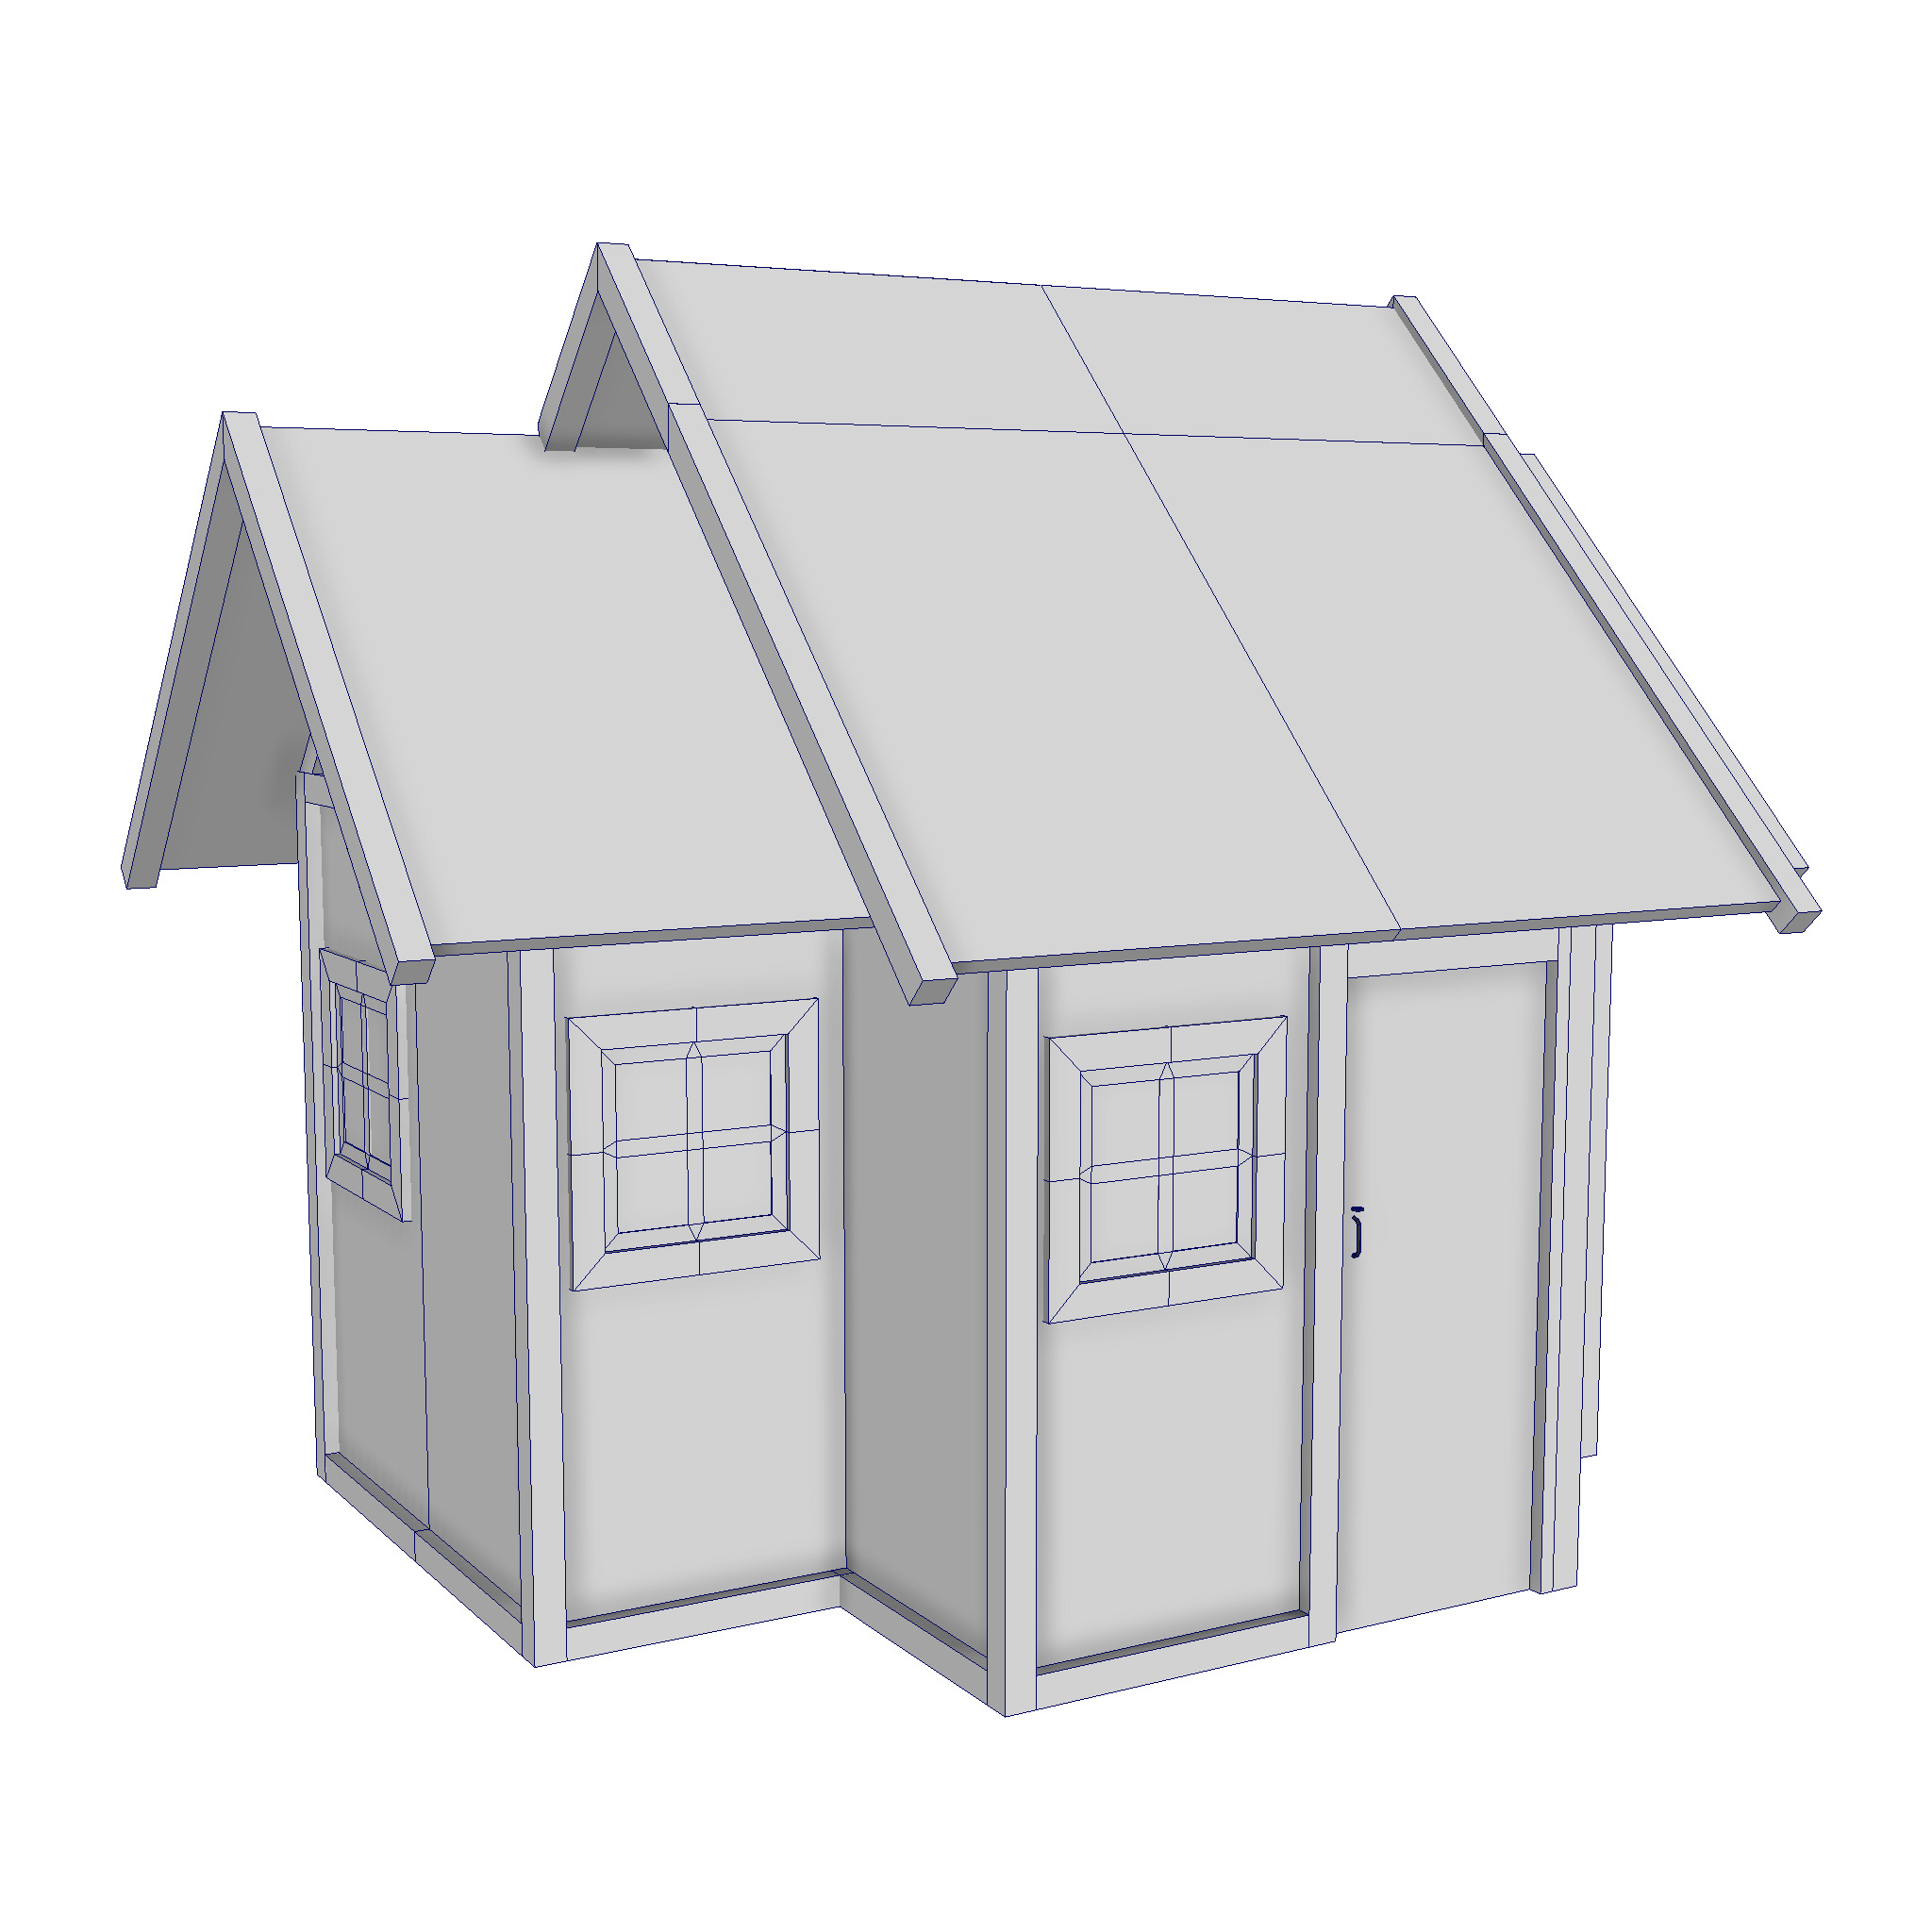 modular wood house set 3d model fbx ma mb 271460